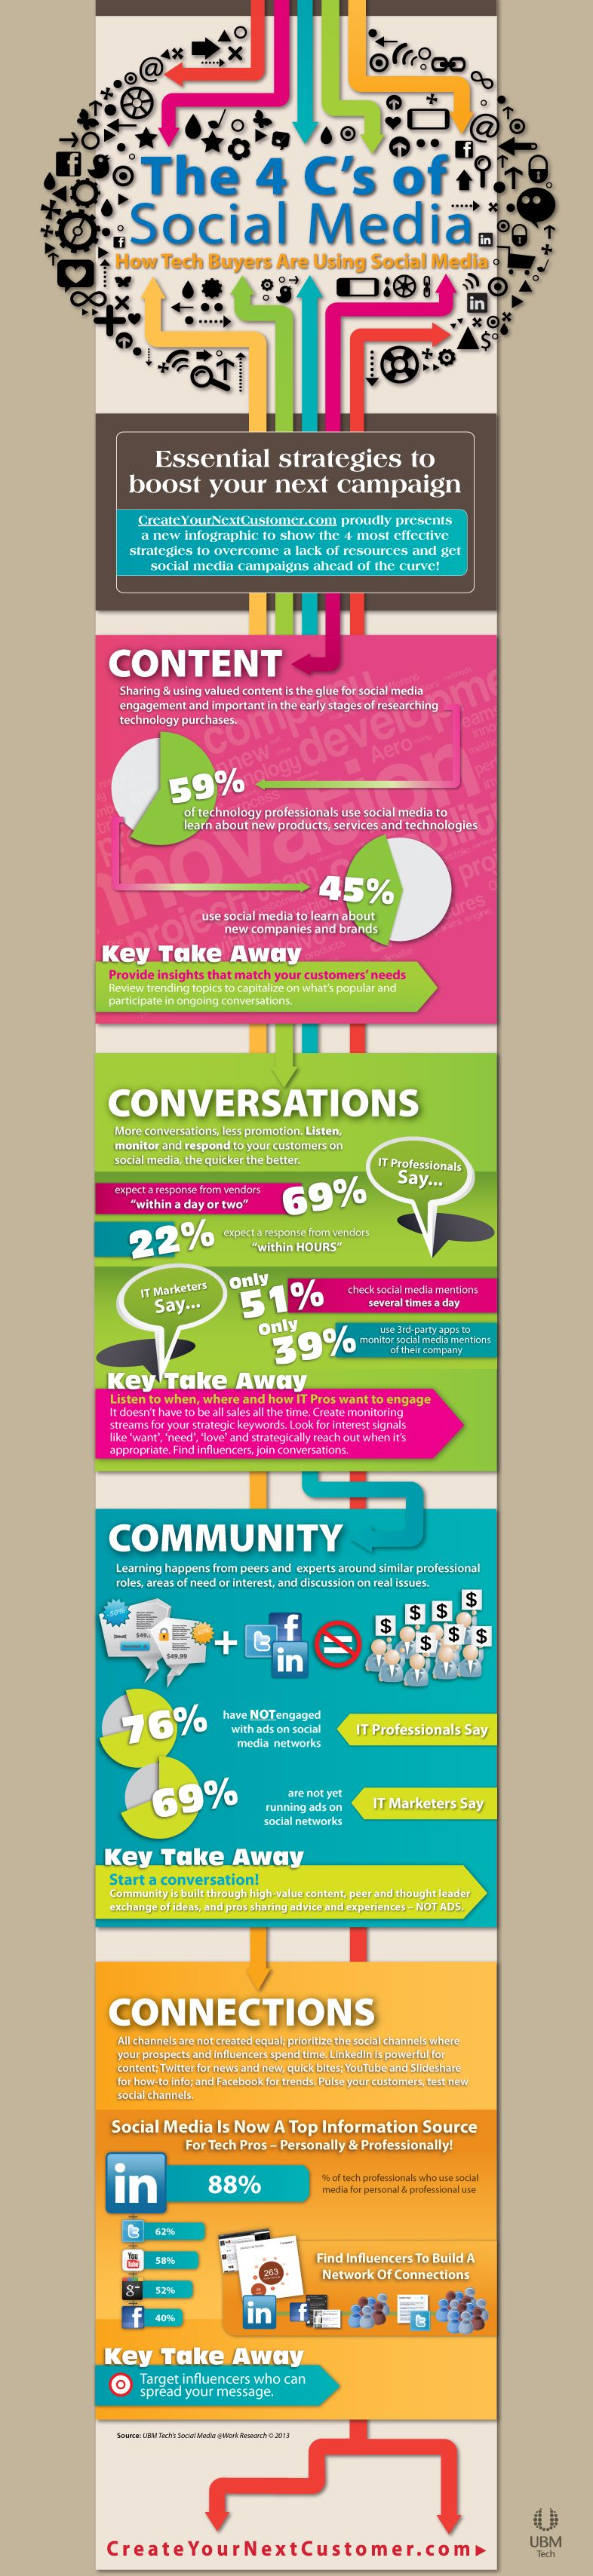 The 4 C's of social media: content, conversations, community, connections #infographic #socialmedia